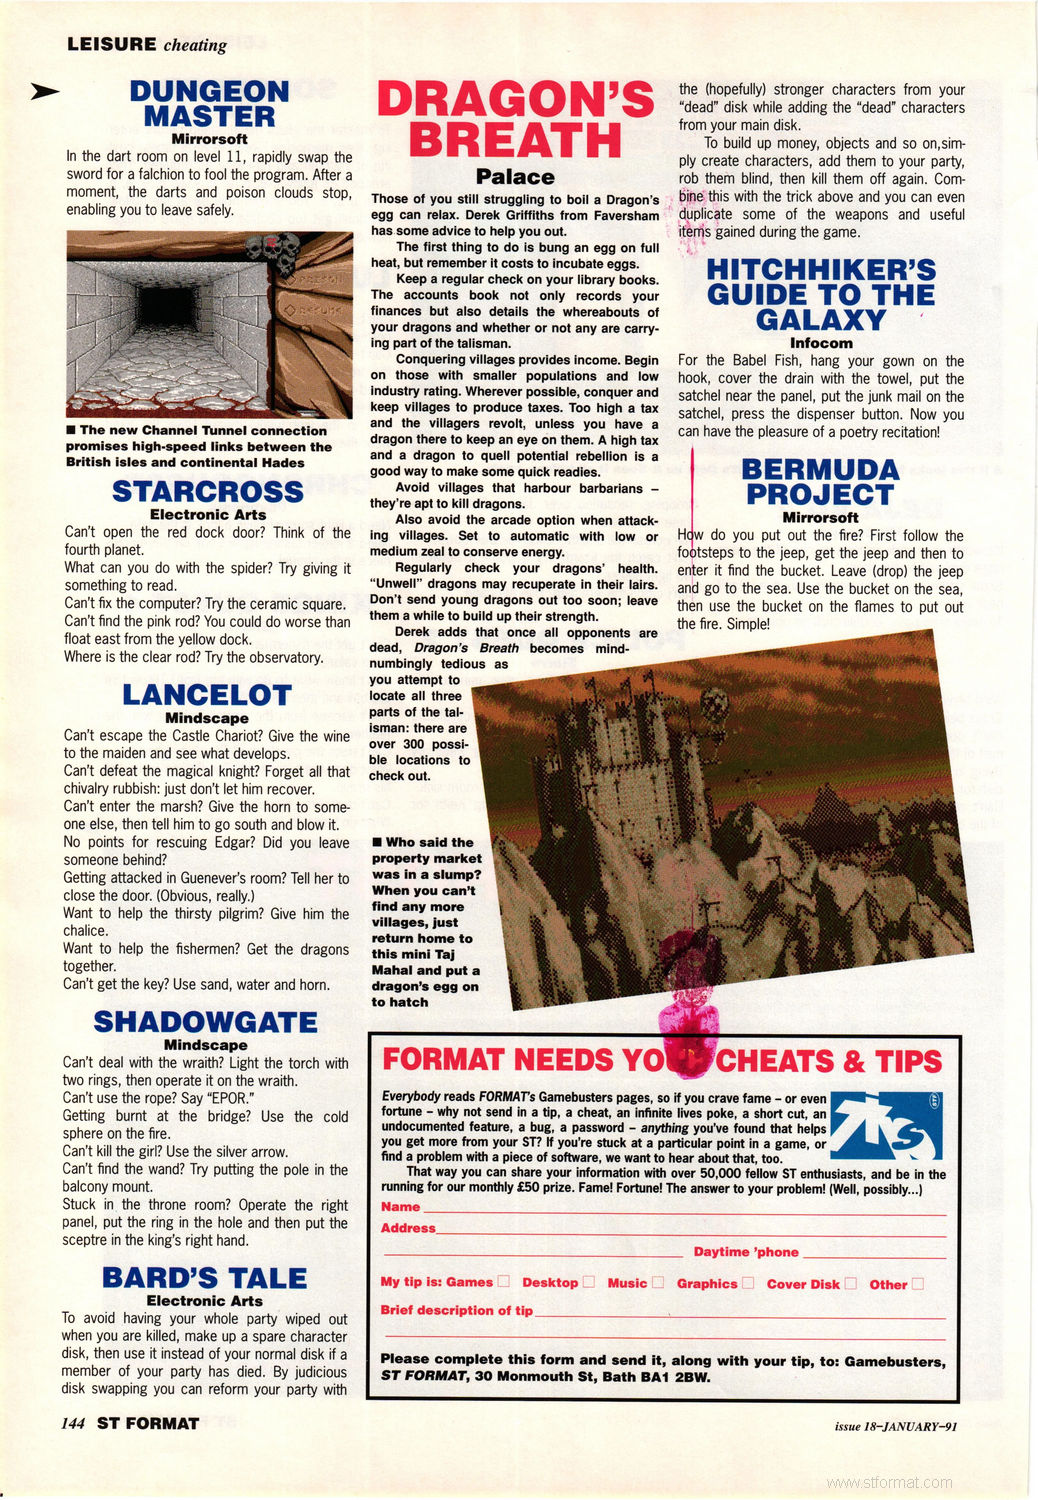 Dungeon Master Hints published in British magazine 'ST Format', Issue #18 January 1991, Page 144